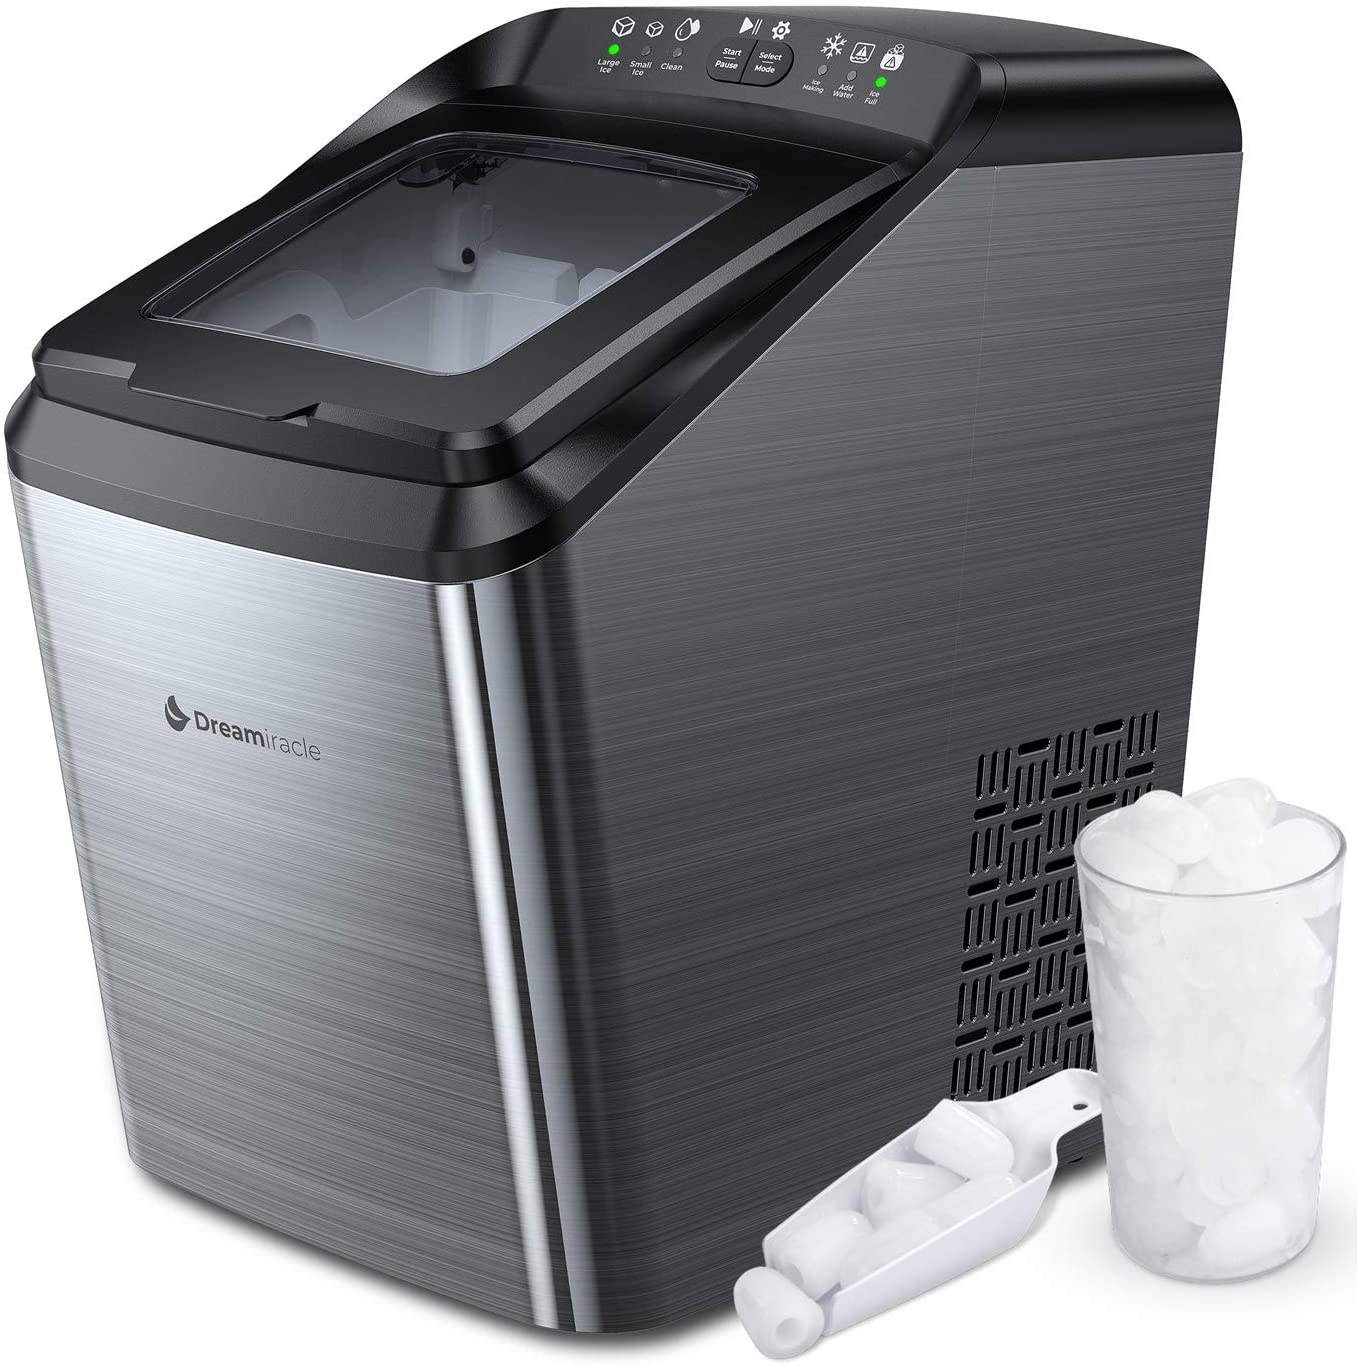 Dreamiracle Ice Maker Machine for Countertop, 33 lbs Bullet Ice Cube in 24H, 9 Ice Cubes Ready in 7-10 Minutes, 2.8L Ice Maker M